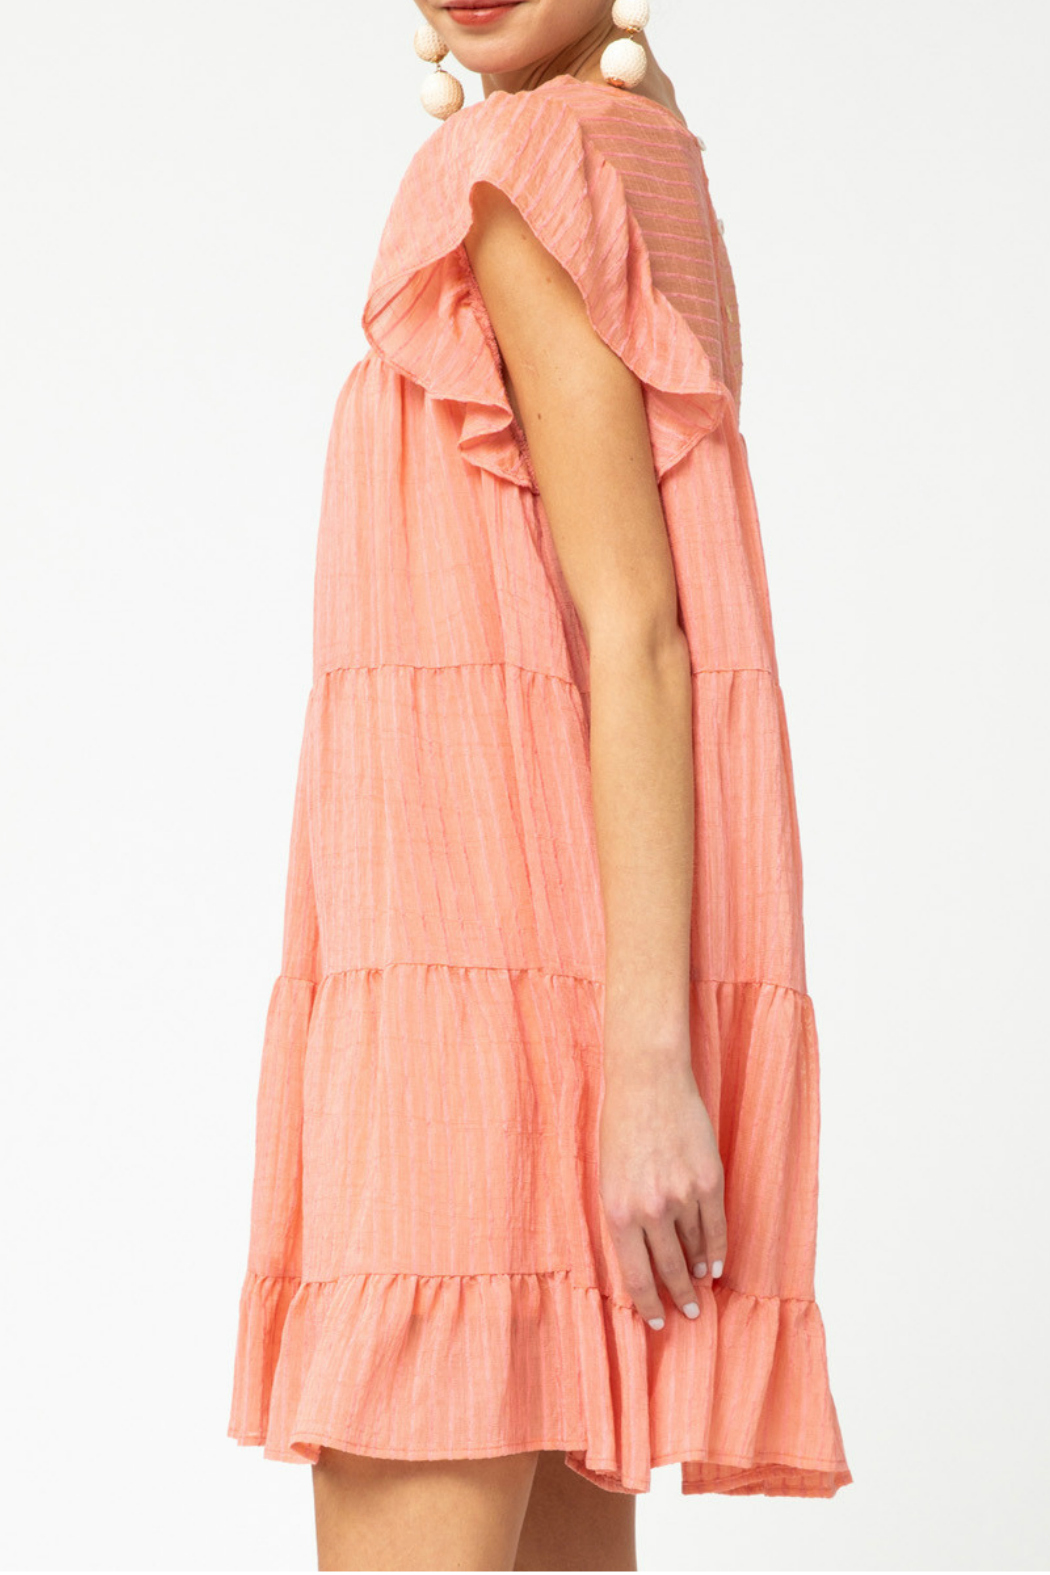 entro  Pinstriped Tiered Dress - Front Full Image